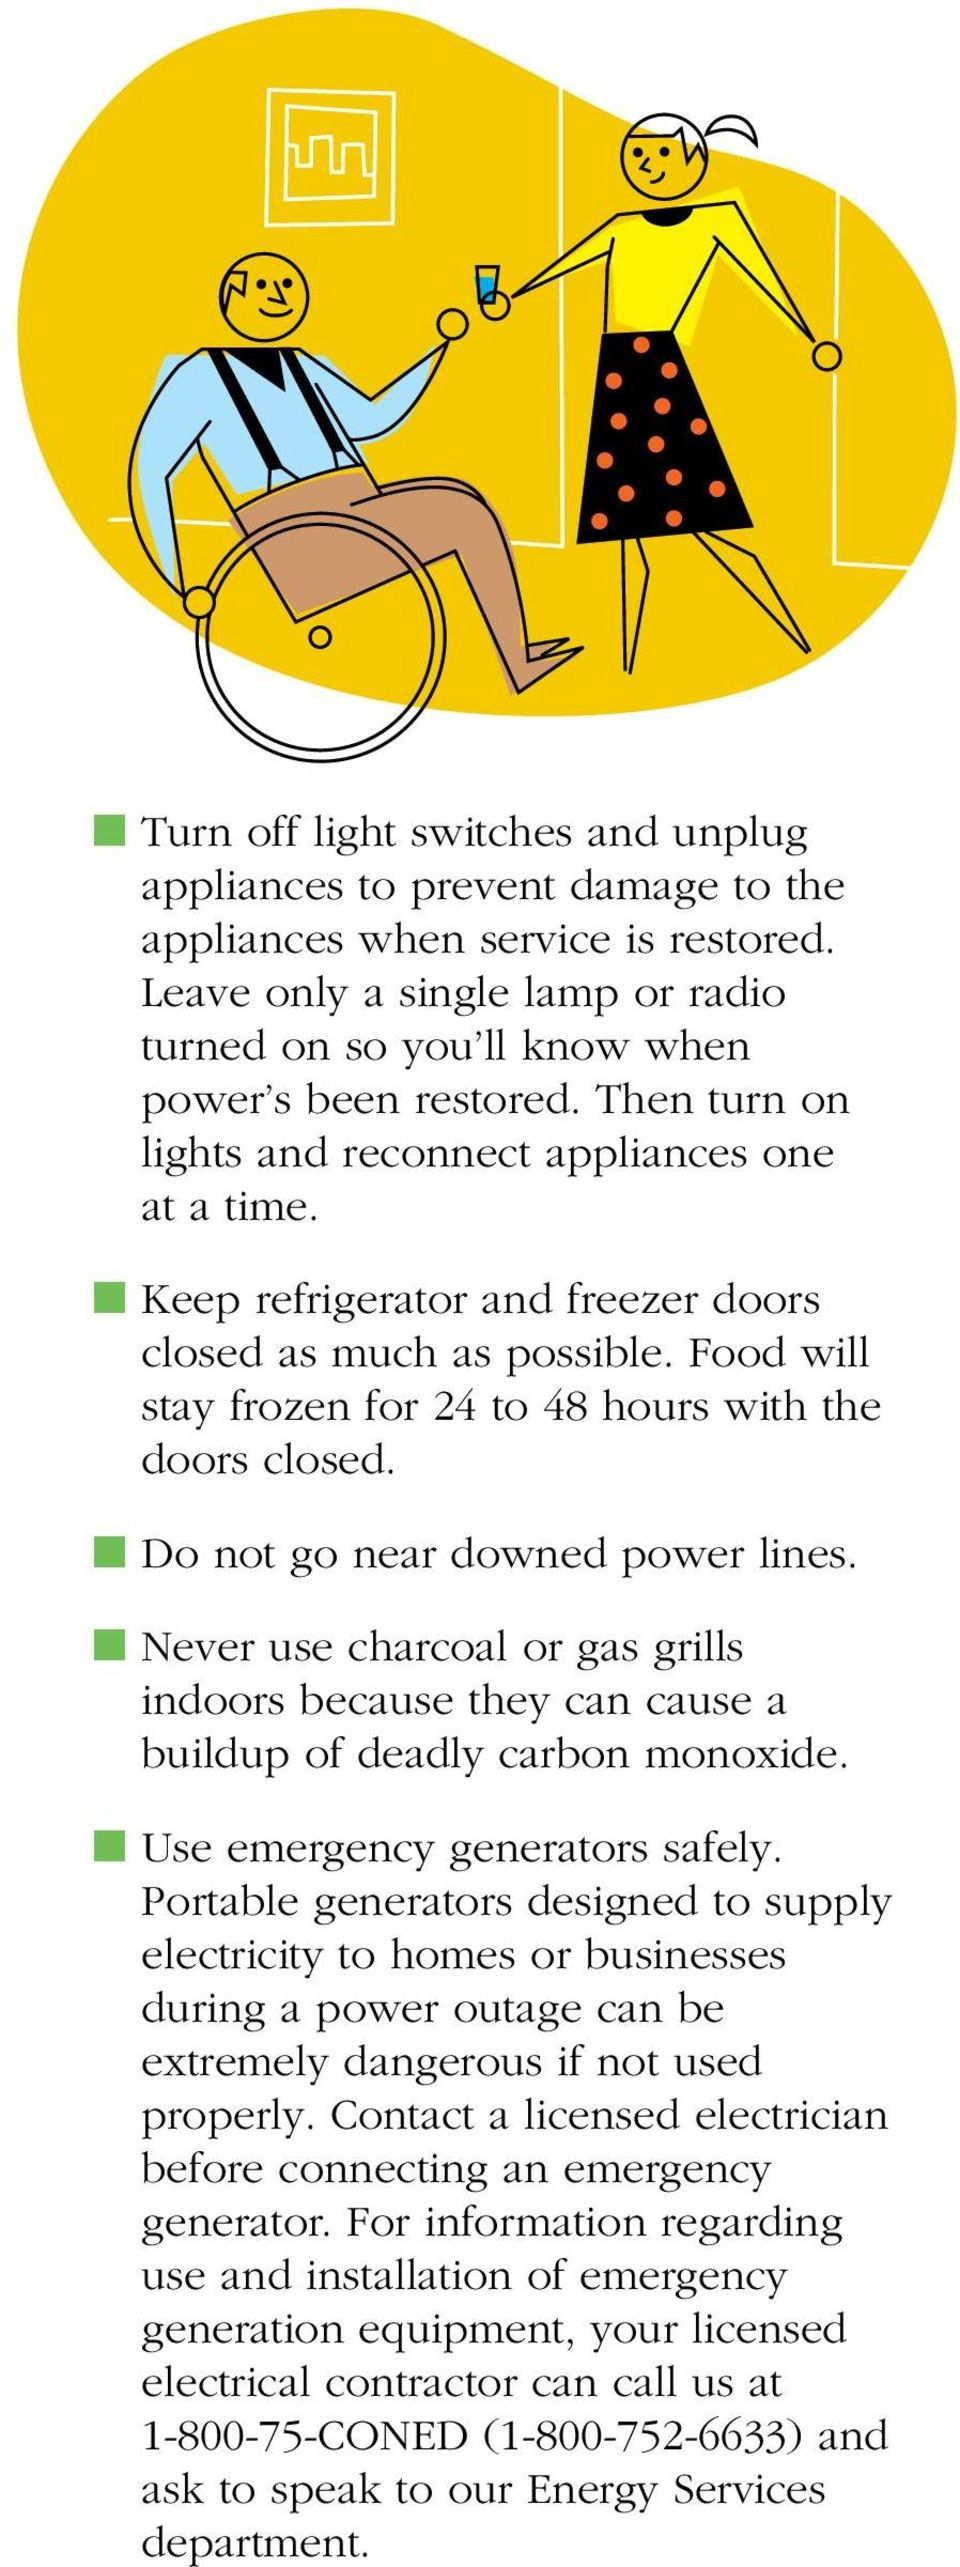 n Do not go near downed power lines. n Never use charcoal or gas grills indoors because they can cause a buildup of deadly carbon monoxide. n Use emergency generators safely.